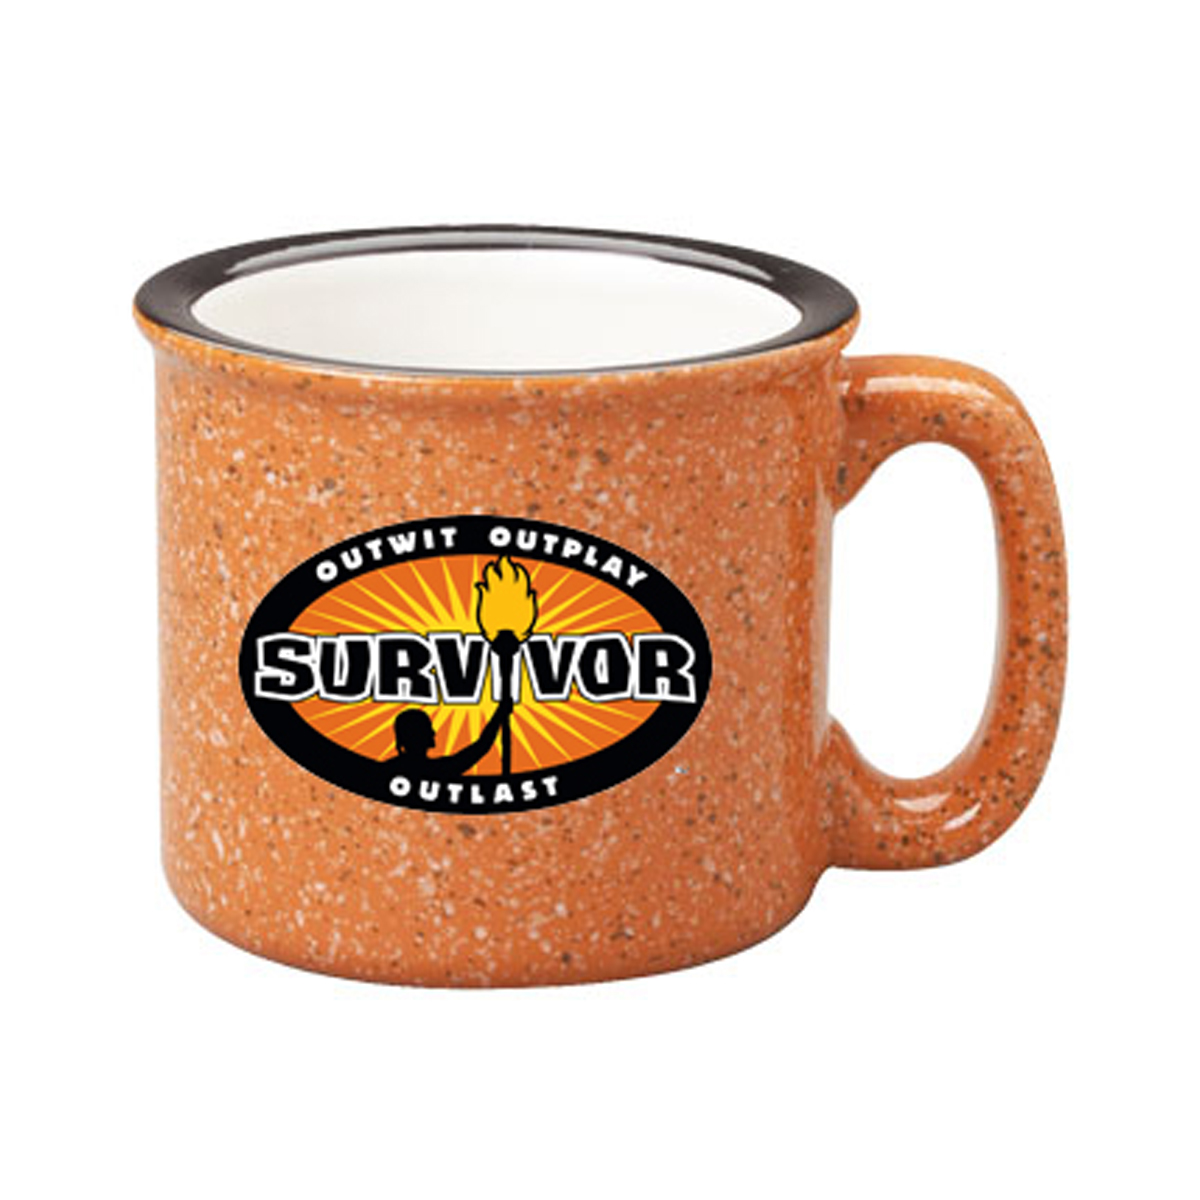 Survivor Outwit, Outplay, Outlast Campfire Mug